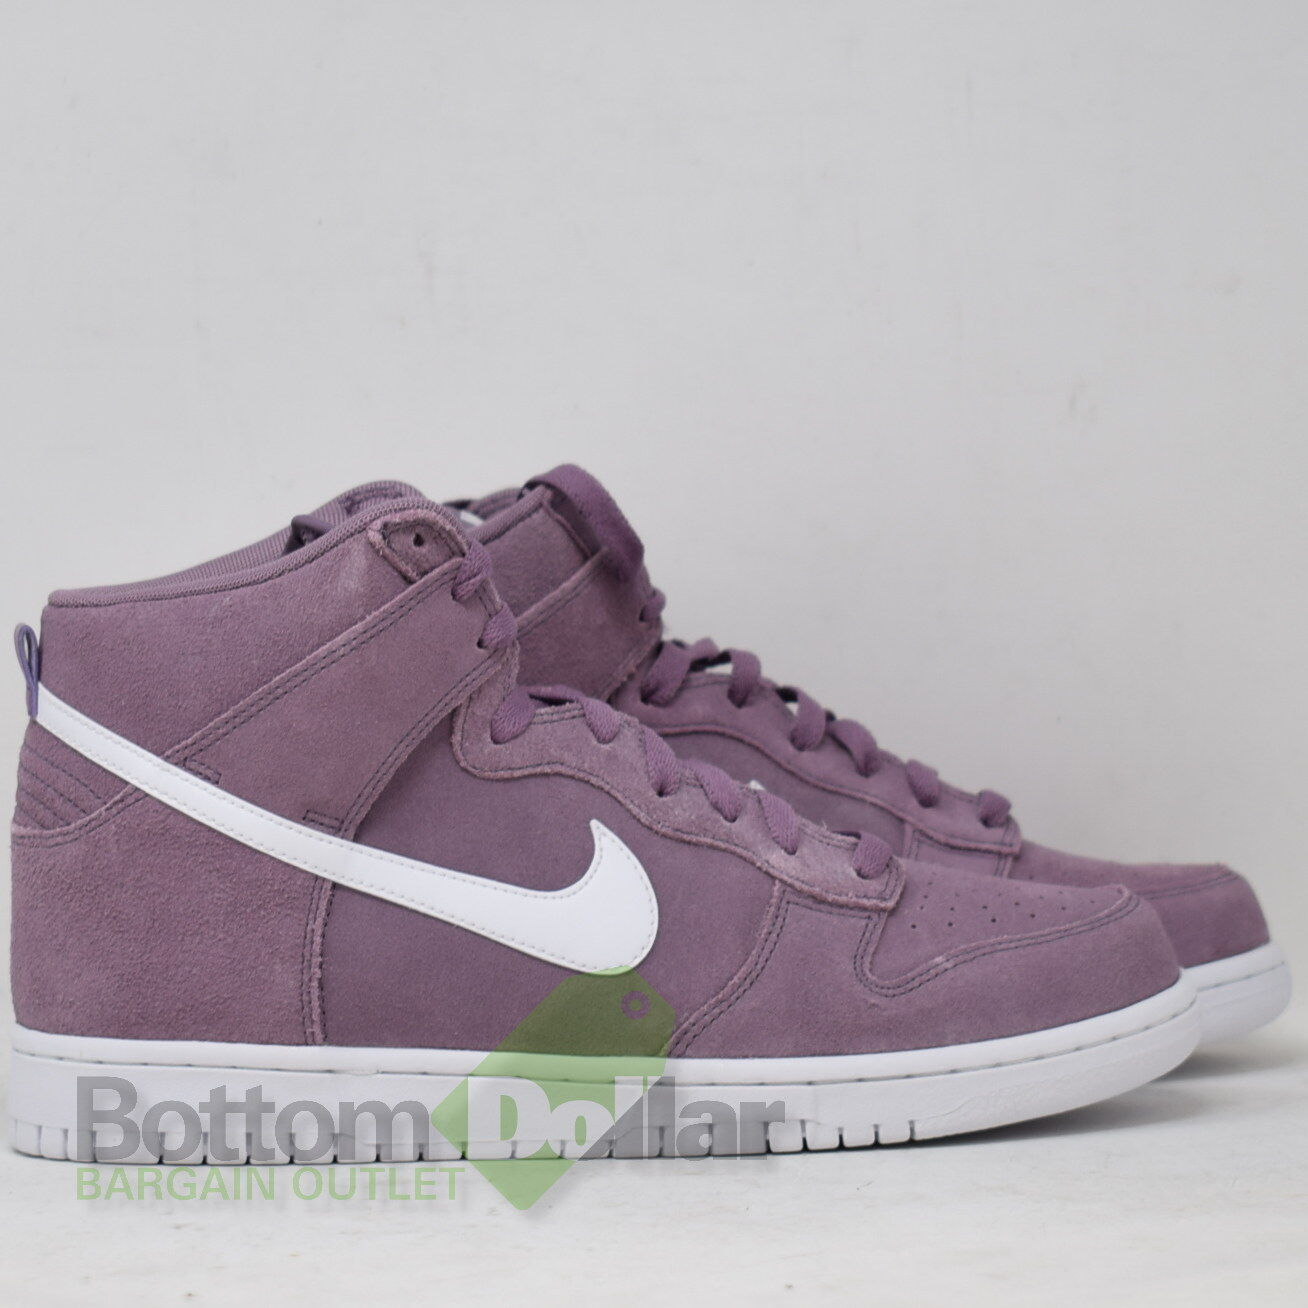 Nike Dunk High Top Men's shoes purple Dust White 904233-500 (9.5)